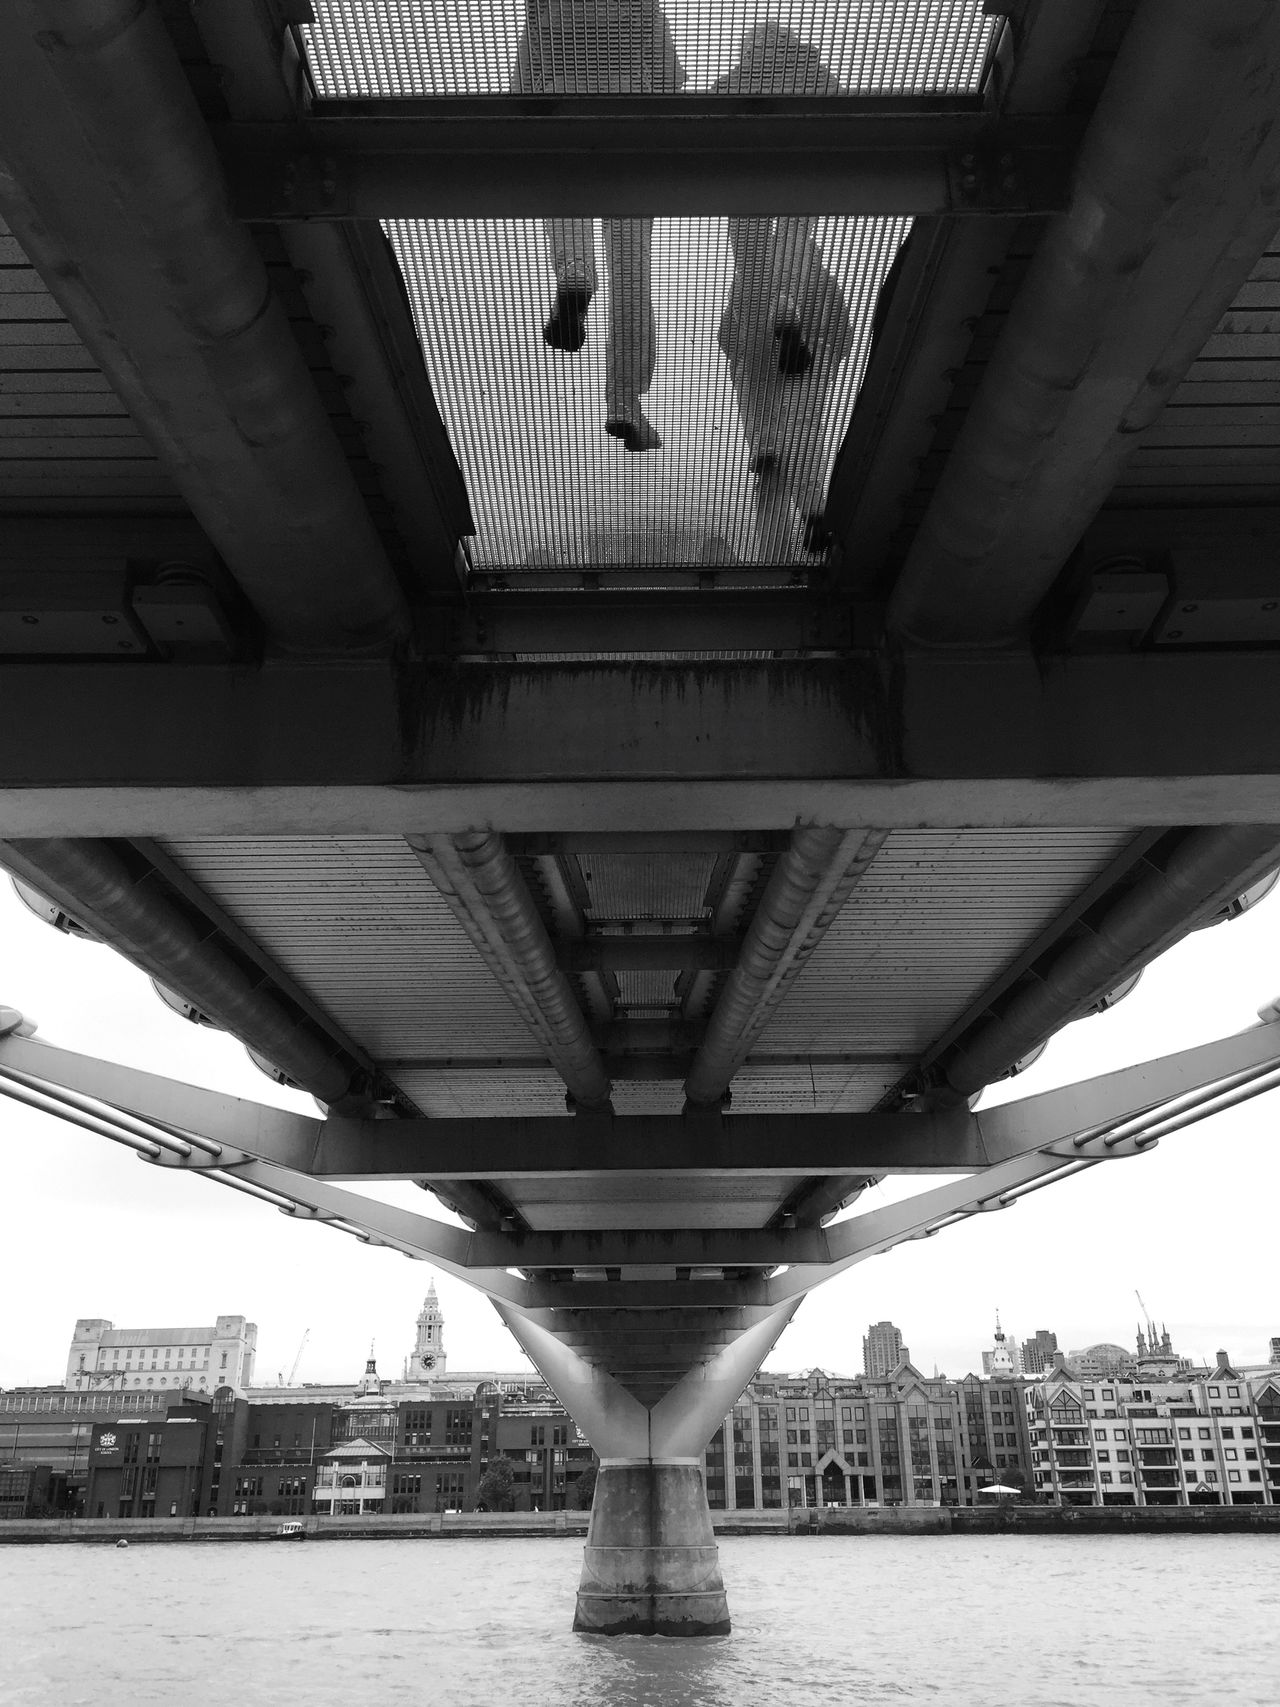 Under the bridge Shades Of Grey Urban Landscape London Calling Architecture Eye4black&white  Monochrome Seeing The Sights My Best Photo 2015 London Lifestyle EyeEm LOST IN London